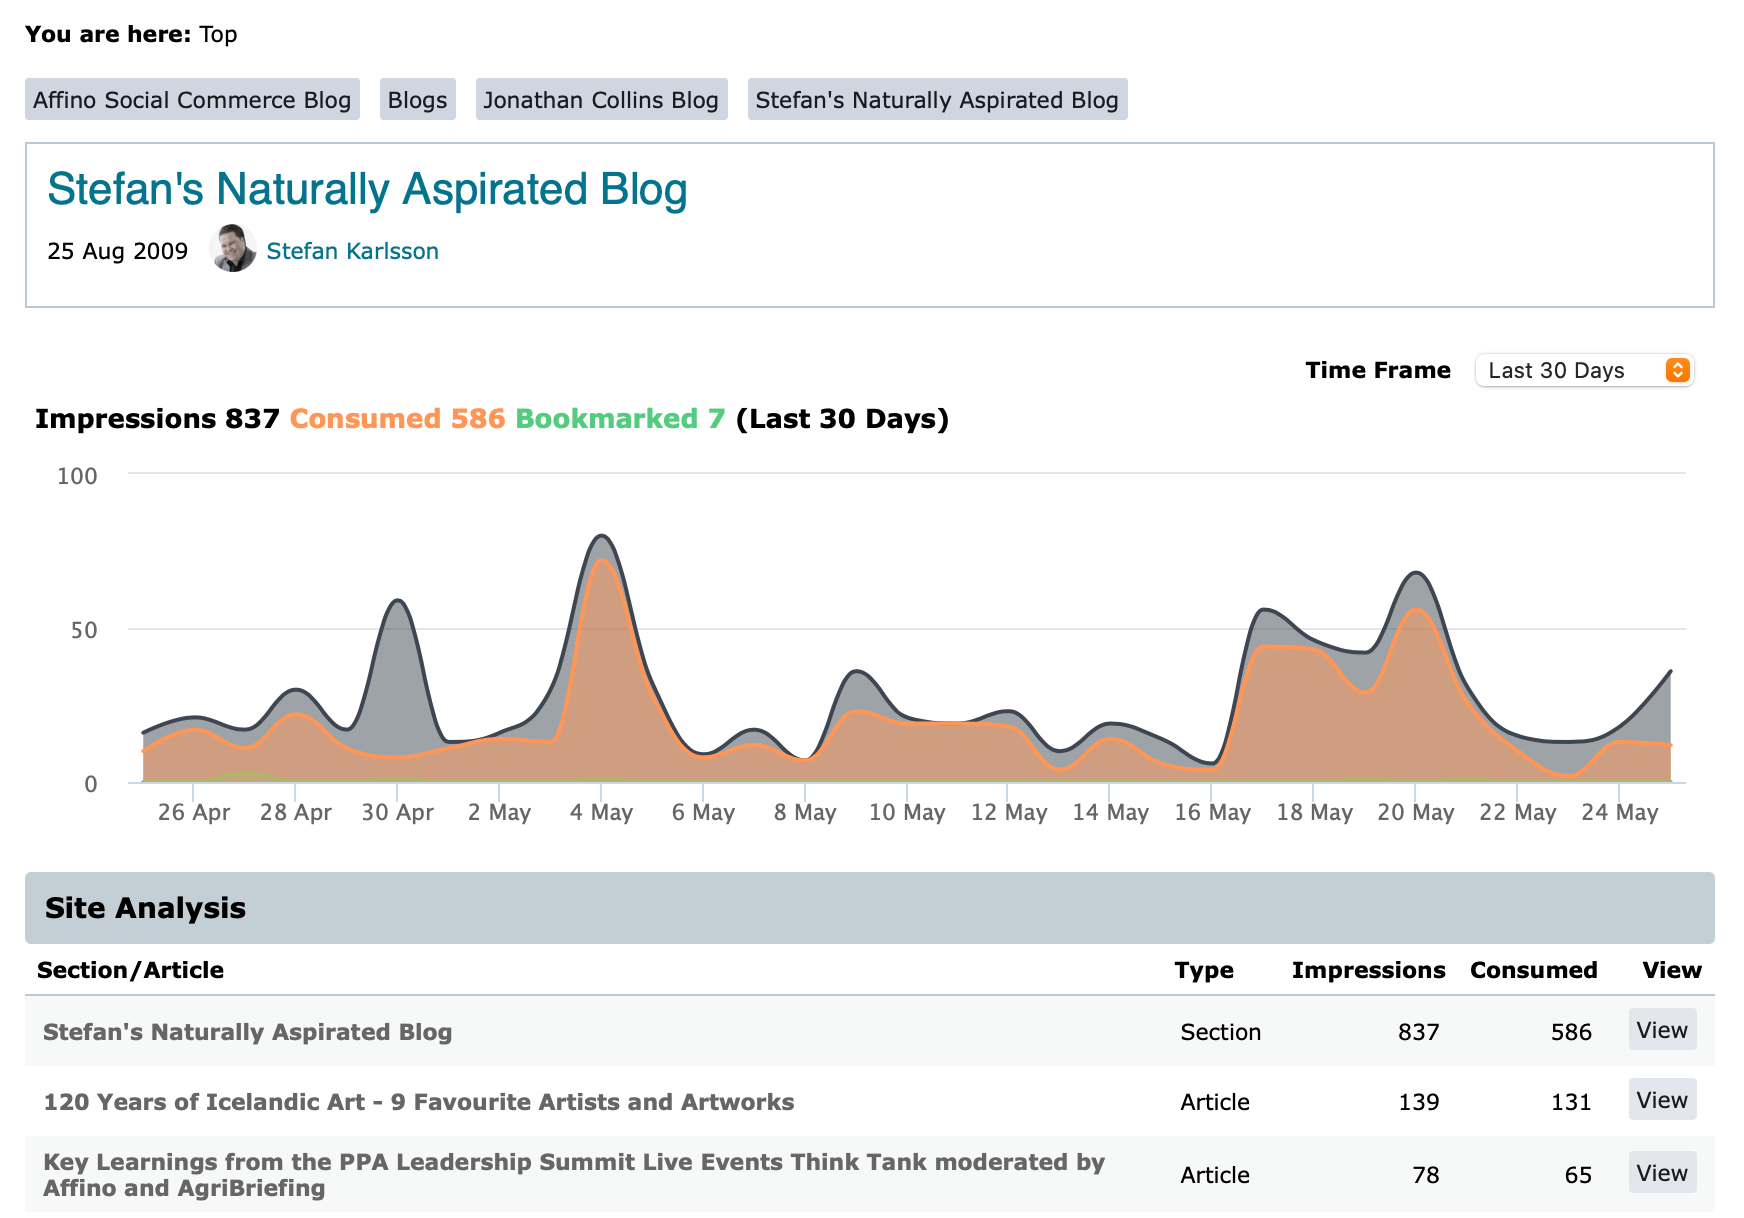 Updated Site Analyis